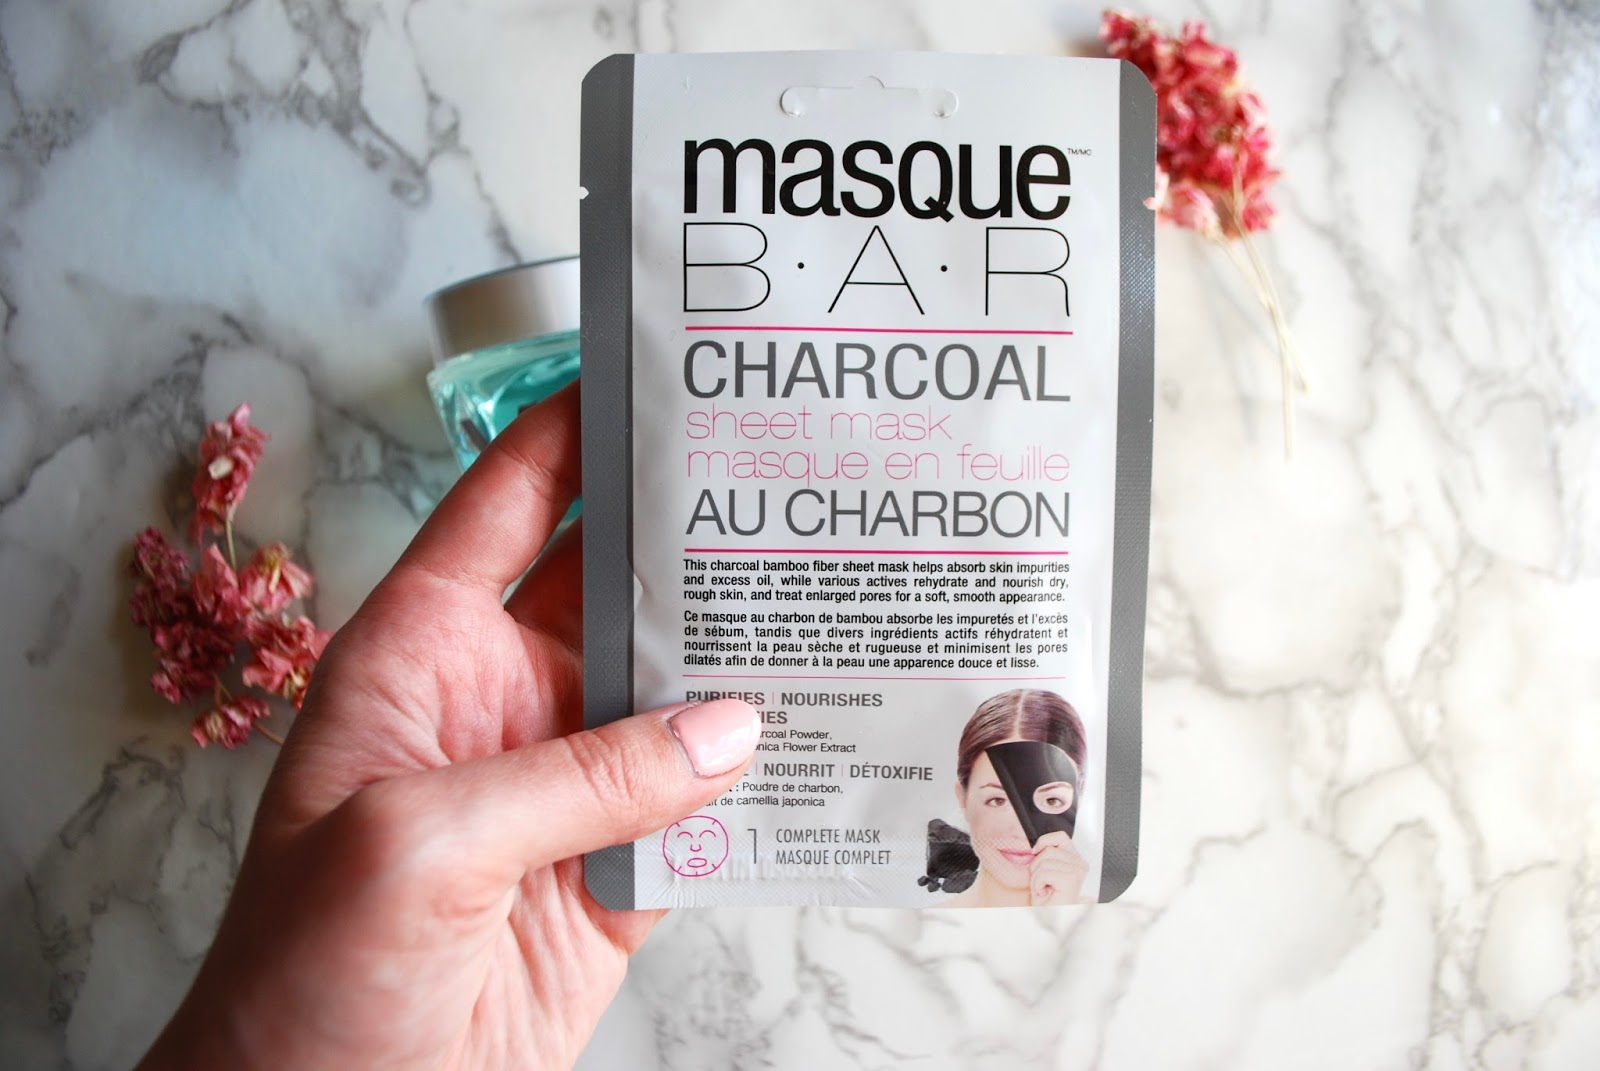 masque bar charcoal mask review vichy quenching mineral mask review drugstore masks